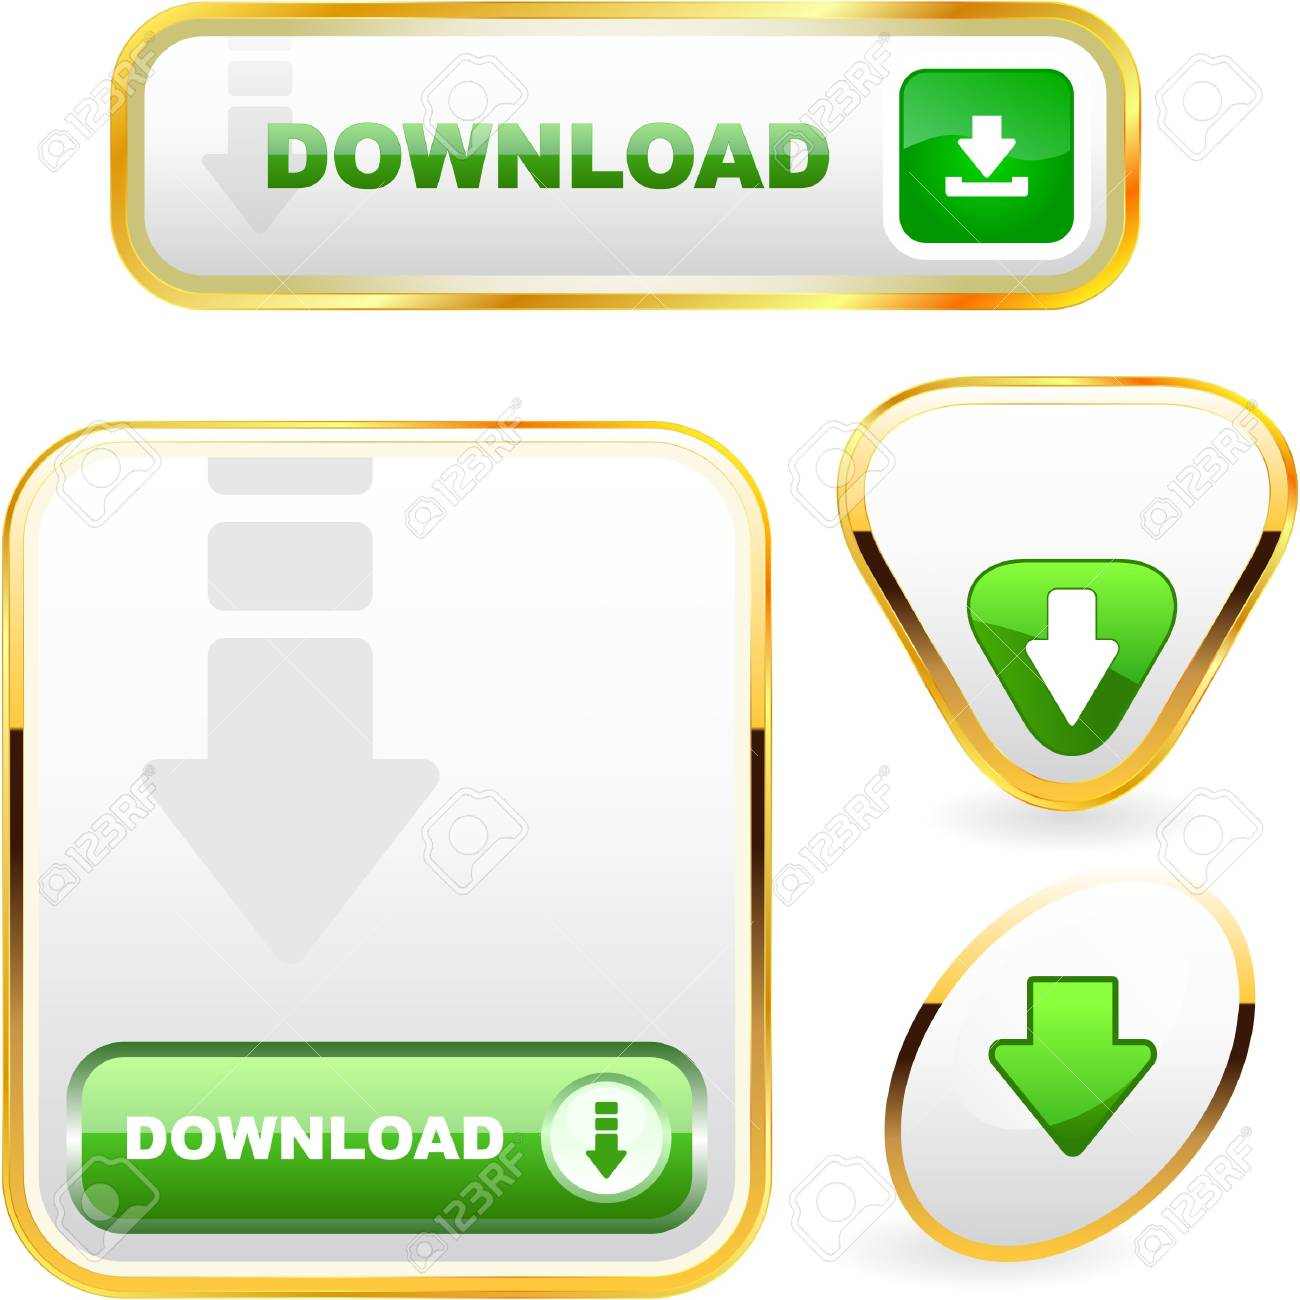 Download button set. Stock Vector - 7800634